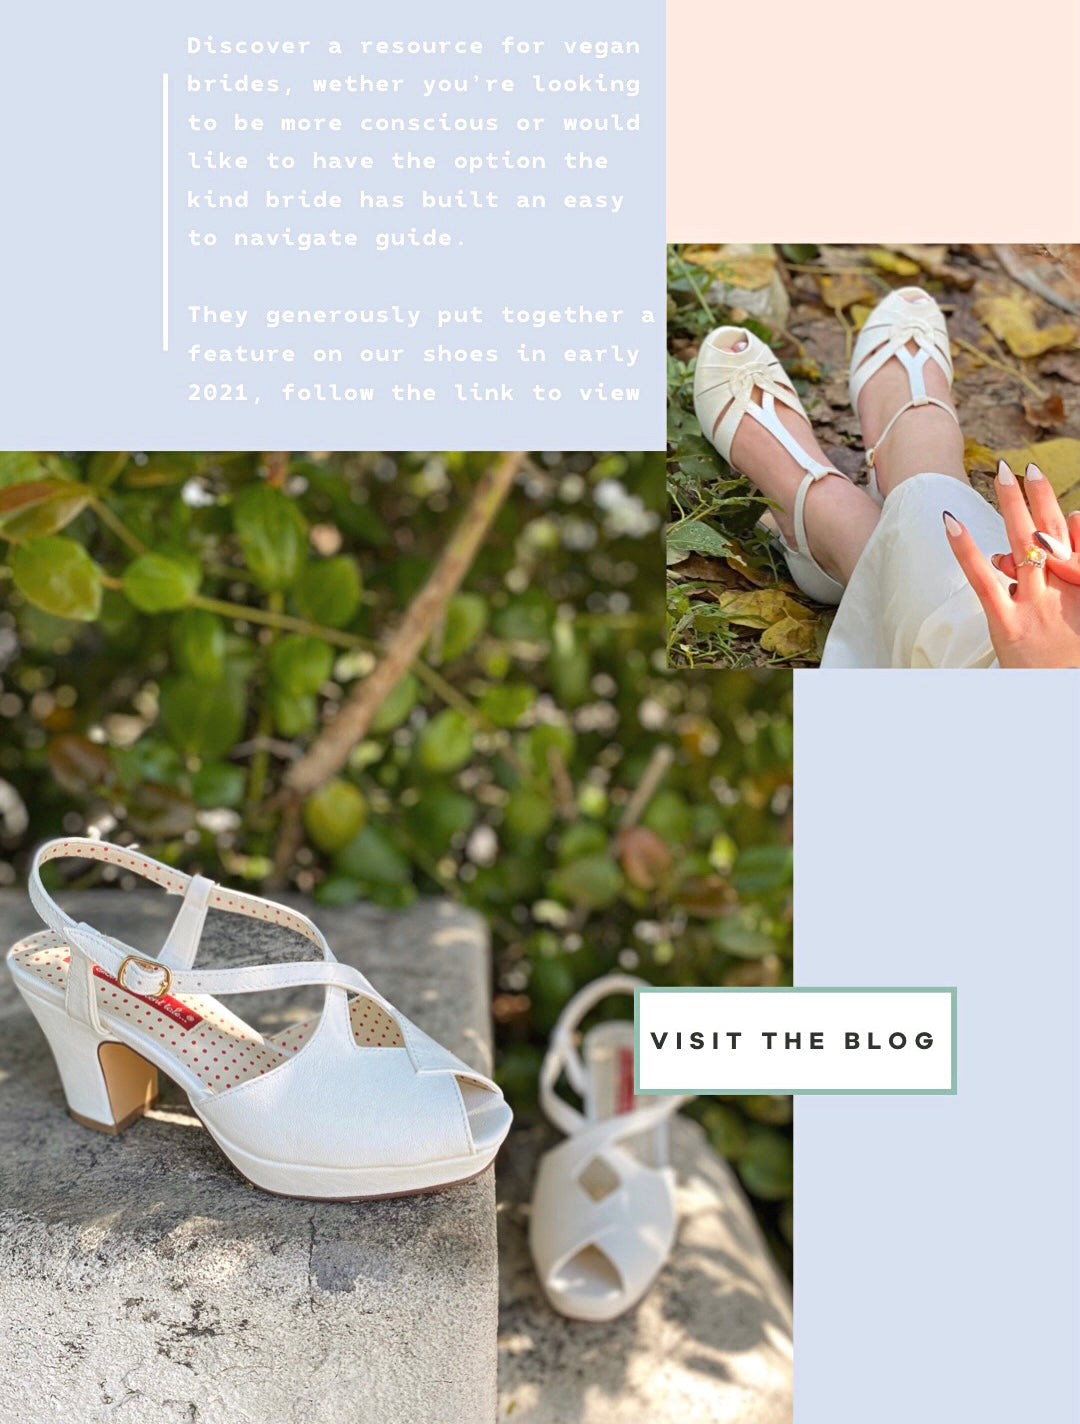 Discover a resource for vegan brides, wether you're looking to be more conscious or would like to have the option the kind bride has built an easy to navigate guide.  They generously put together a feature on our shoes in early 2021, follow the link to view